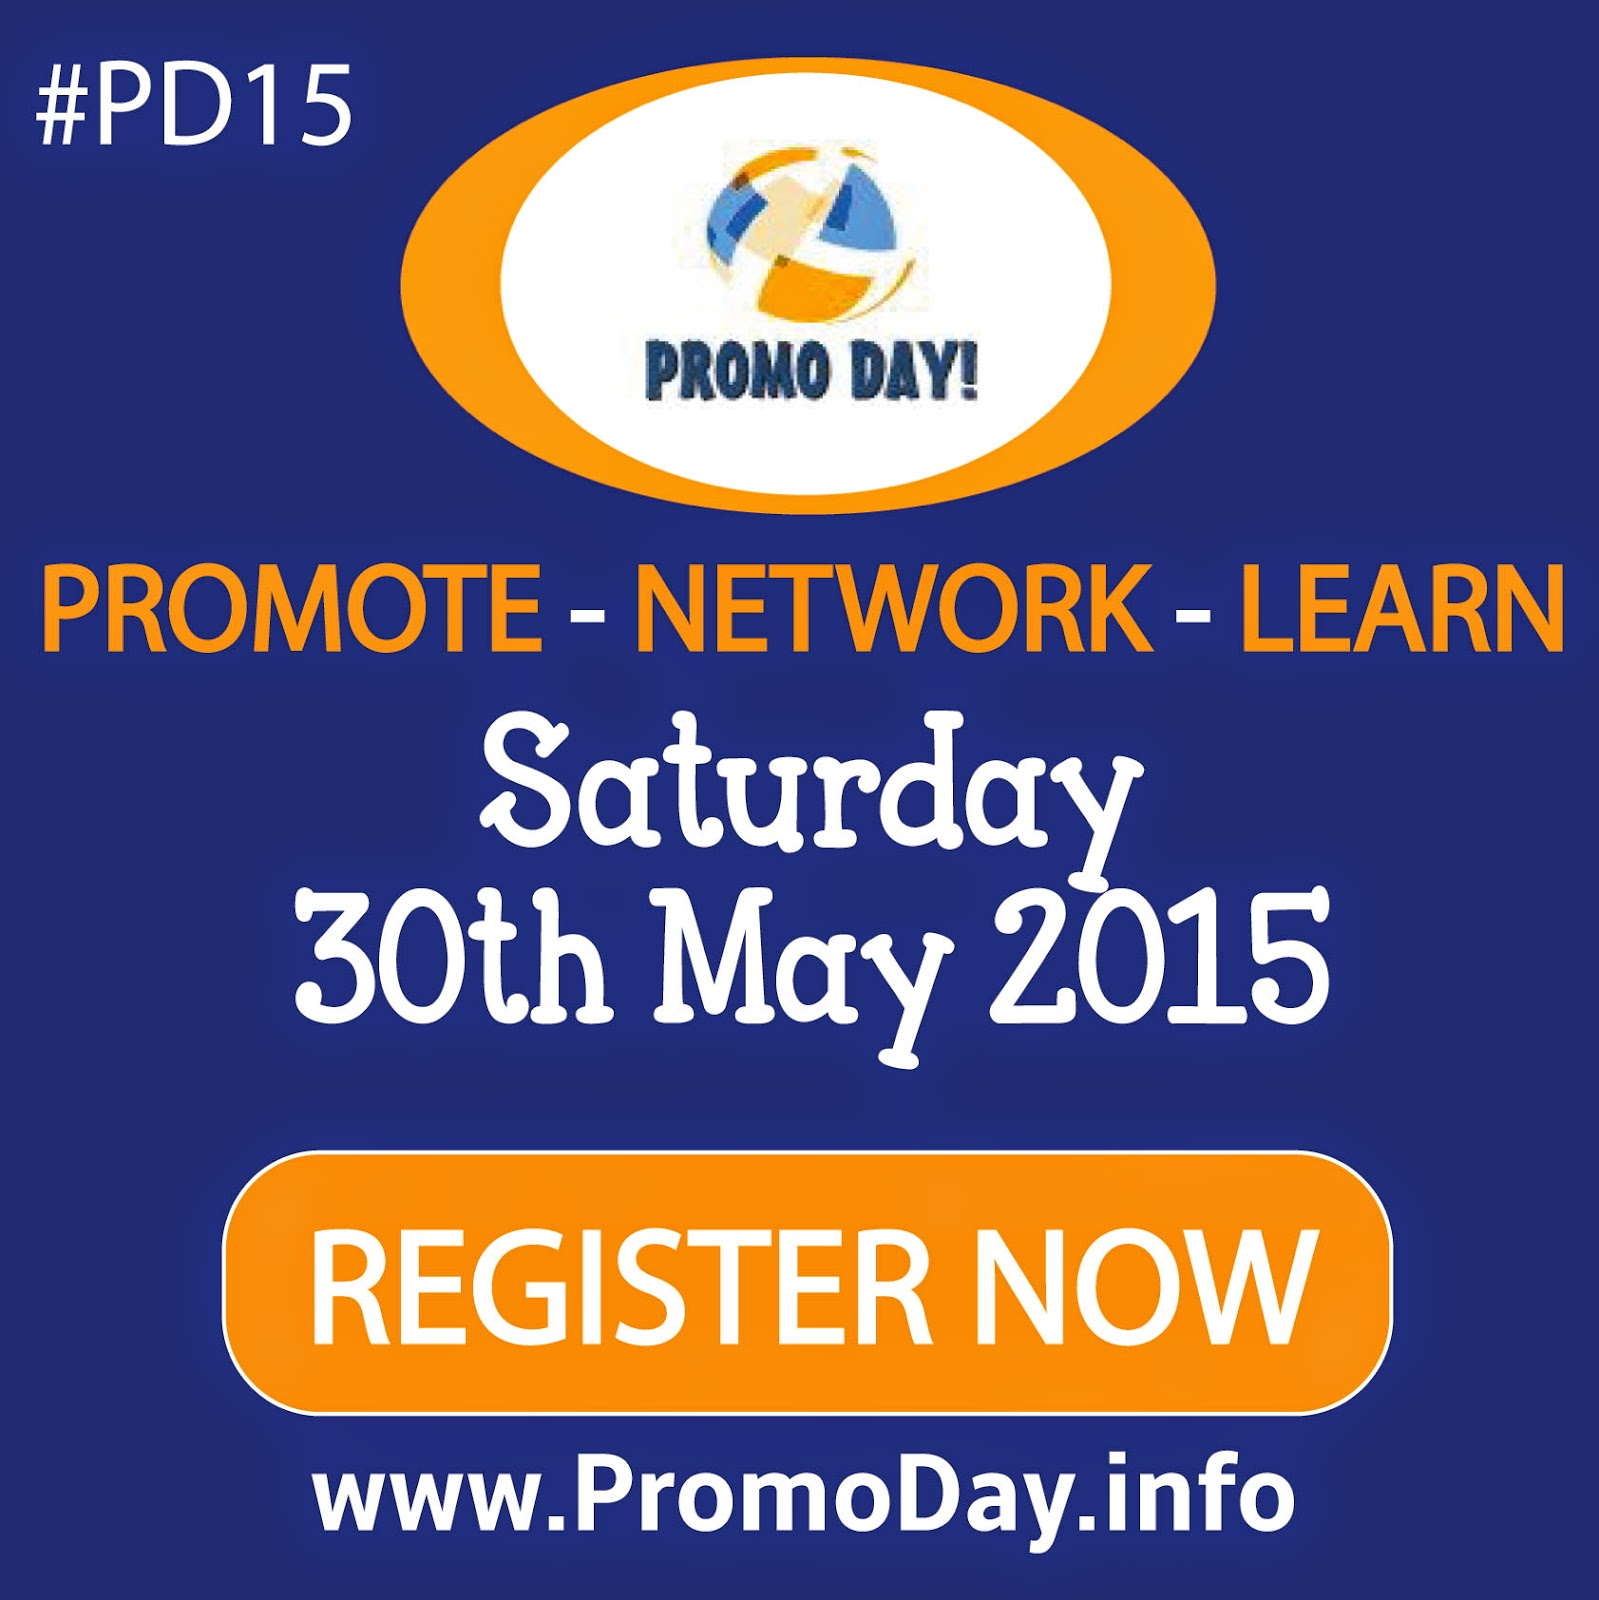 How To Get the Most Out of #PD15 (register now at www.PromoDay.info)